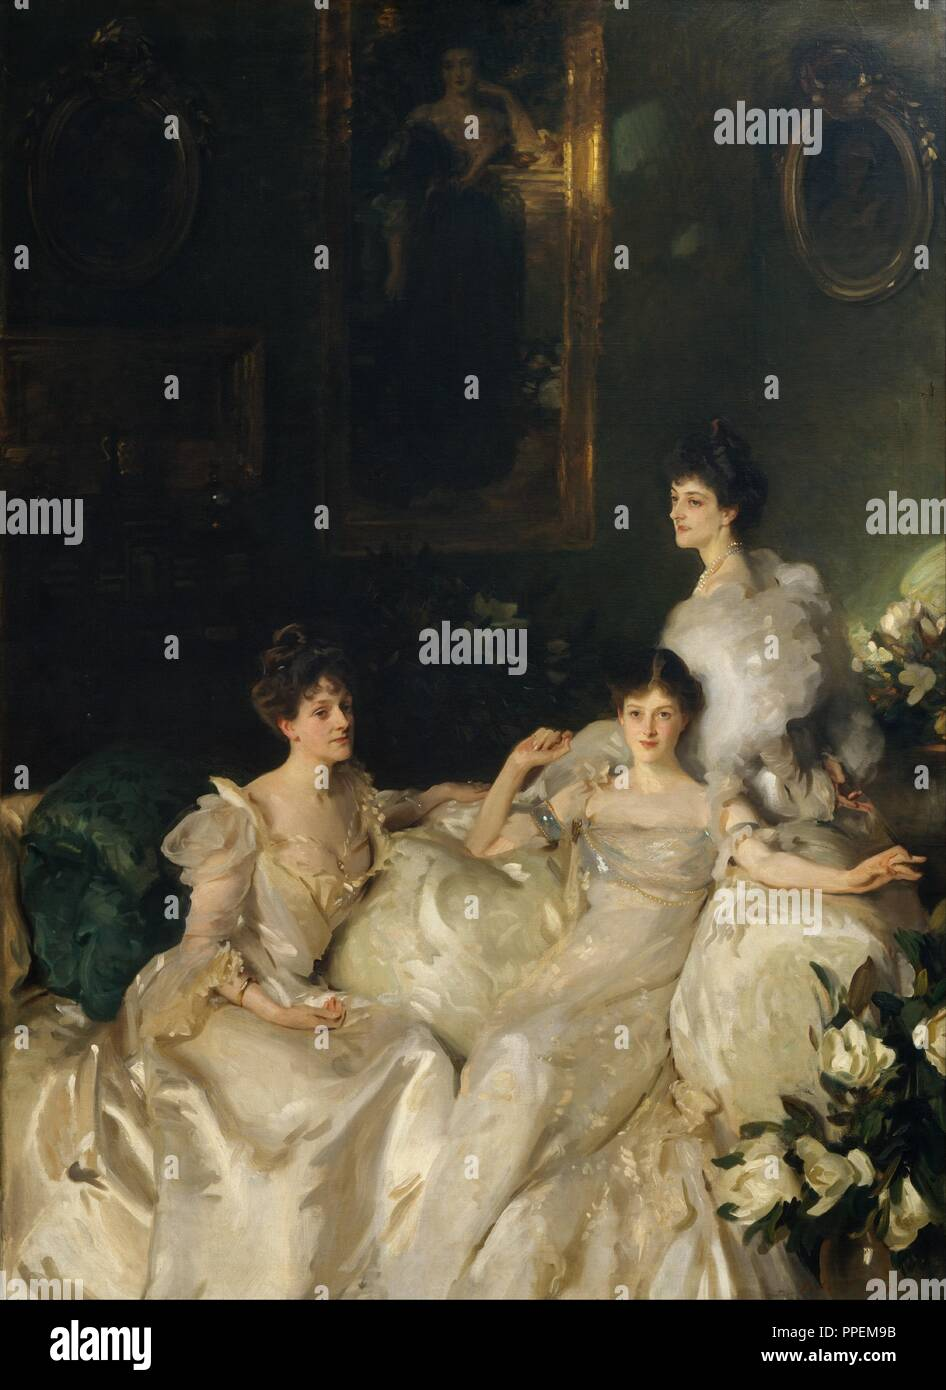 The Wyndham Sisters: Lady Elcho, Mrs. Adeane, and Mrs. Tennant. Artist: John Singer Sargent (American, Florence 1856-1925 London). Dimensions: 115 x 84 1/8 in. (292.1 x 213.7 cm). Date: 1899.  The three daughters of the Honorable Percy Wyndham, a wealthy Londoner, appear in this monumental canvas. From the left, they are Madeline Adeane (1869-1941), Pamela Tennant (1871-1928), and Mary Constance, Lady Elcho (1862-1937). Sargent painted them in the drawing room of their family's residence on Belgrave Square. Seen on the wall above them is George Frederic Watts's portrait of their mother (privat - Stock Image